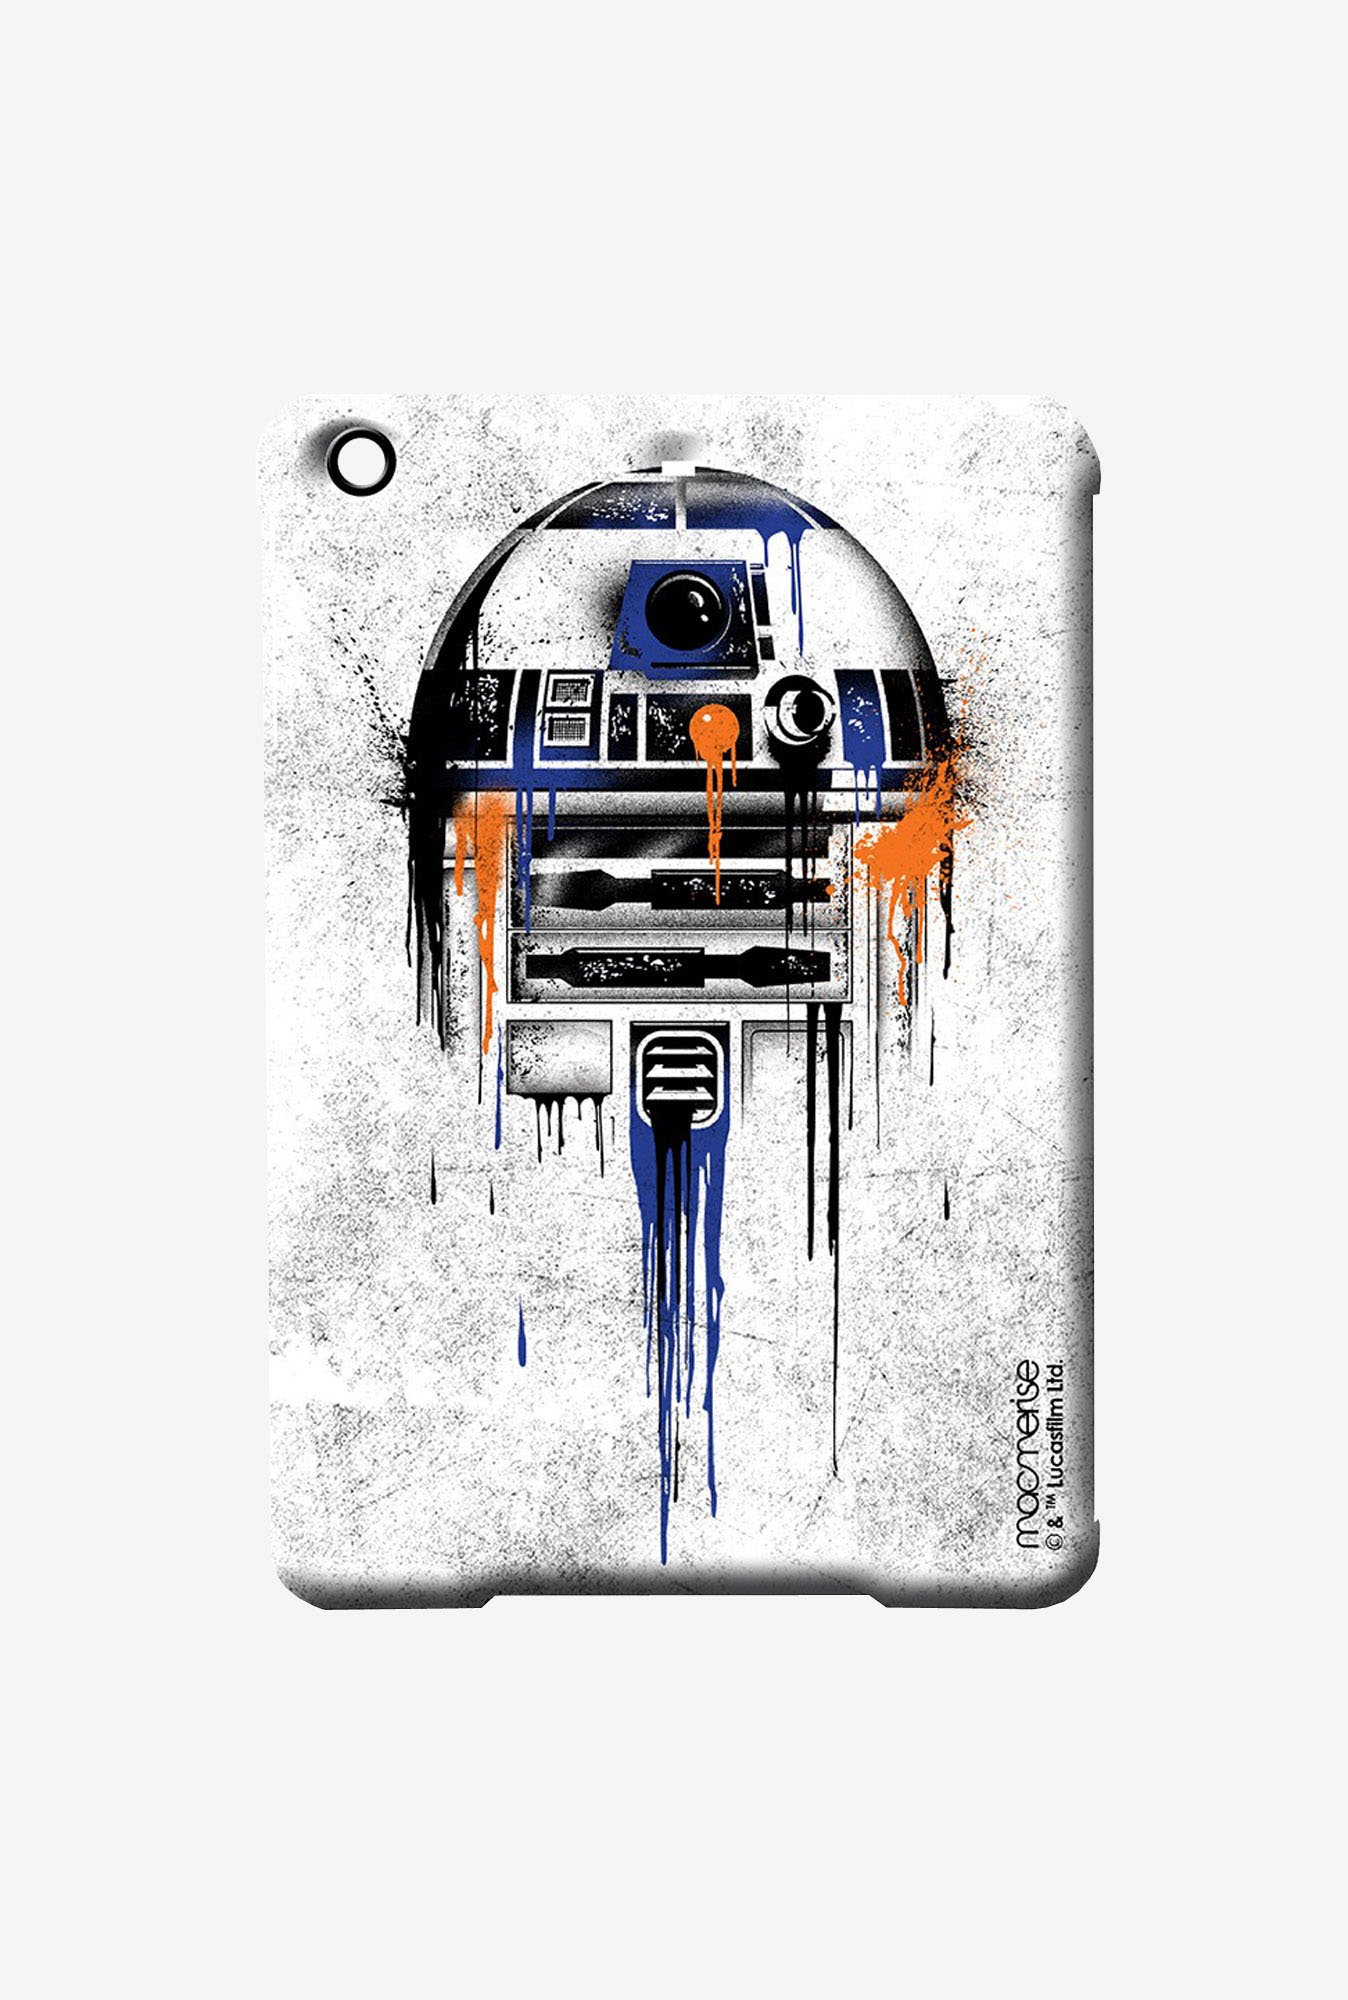 Macmerise Astro Droid Pro Case for iPad Air 2